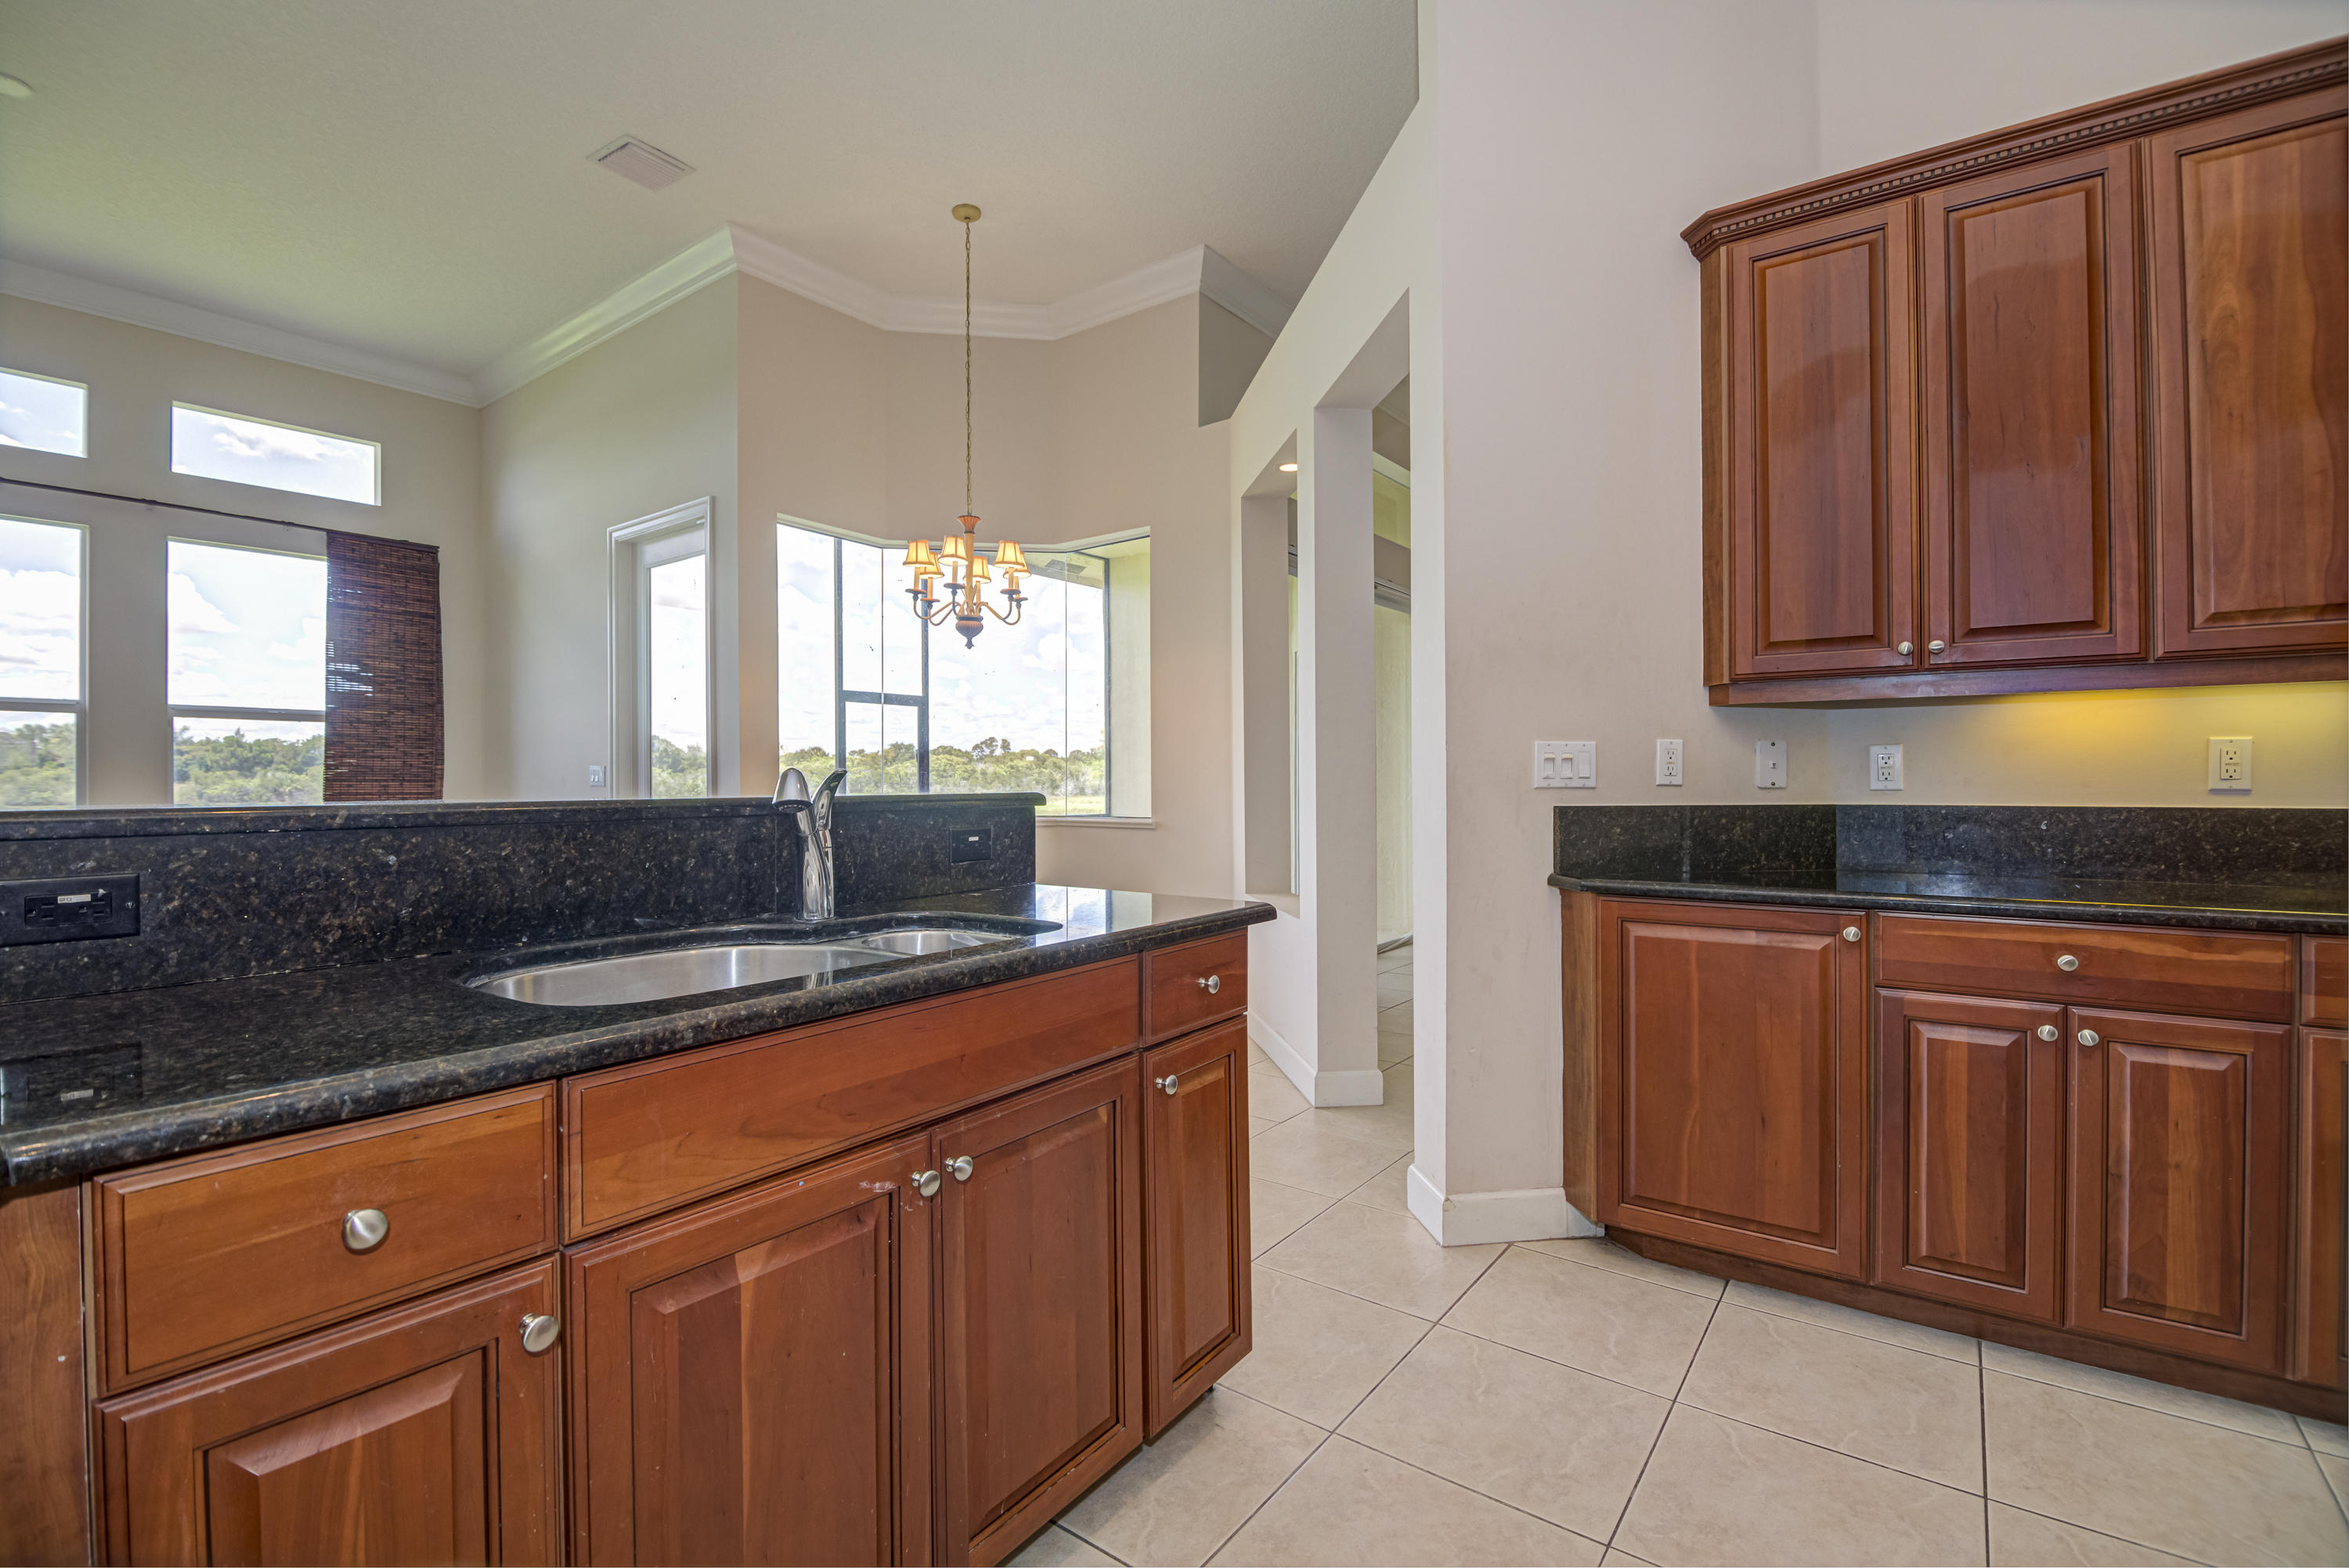 ST LUCIE WEST PLAT #136 TORTOISE CAY AT ST LUCIE WEST PHASE II LOT 133 (OR 1693-1555)